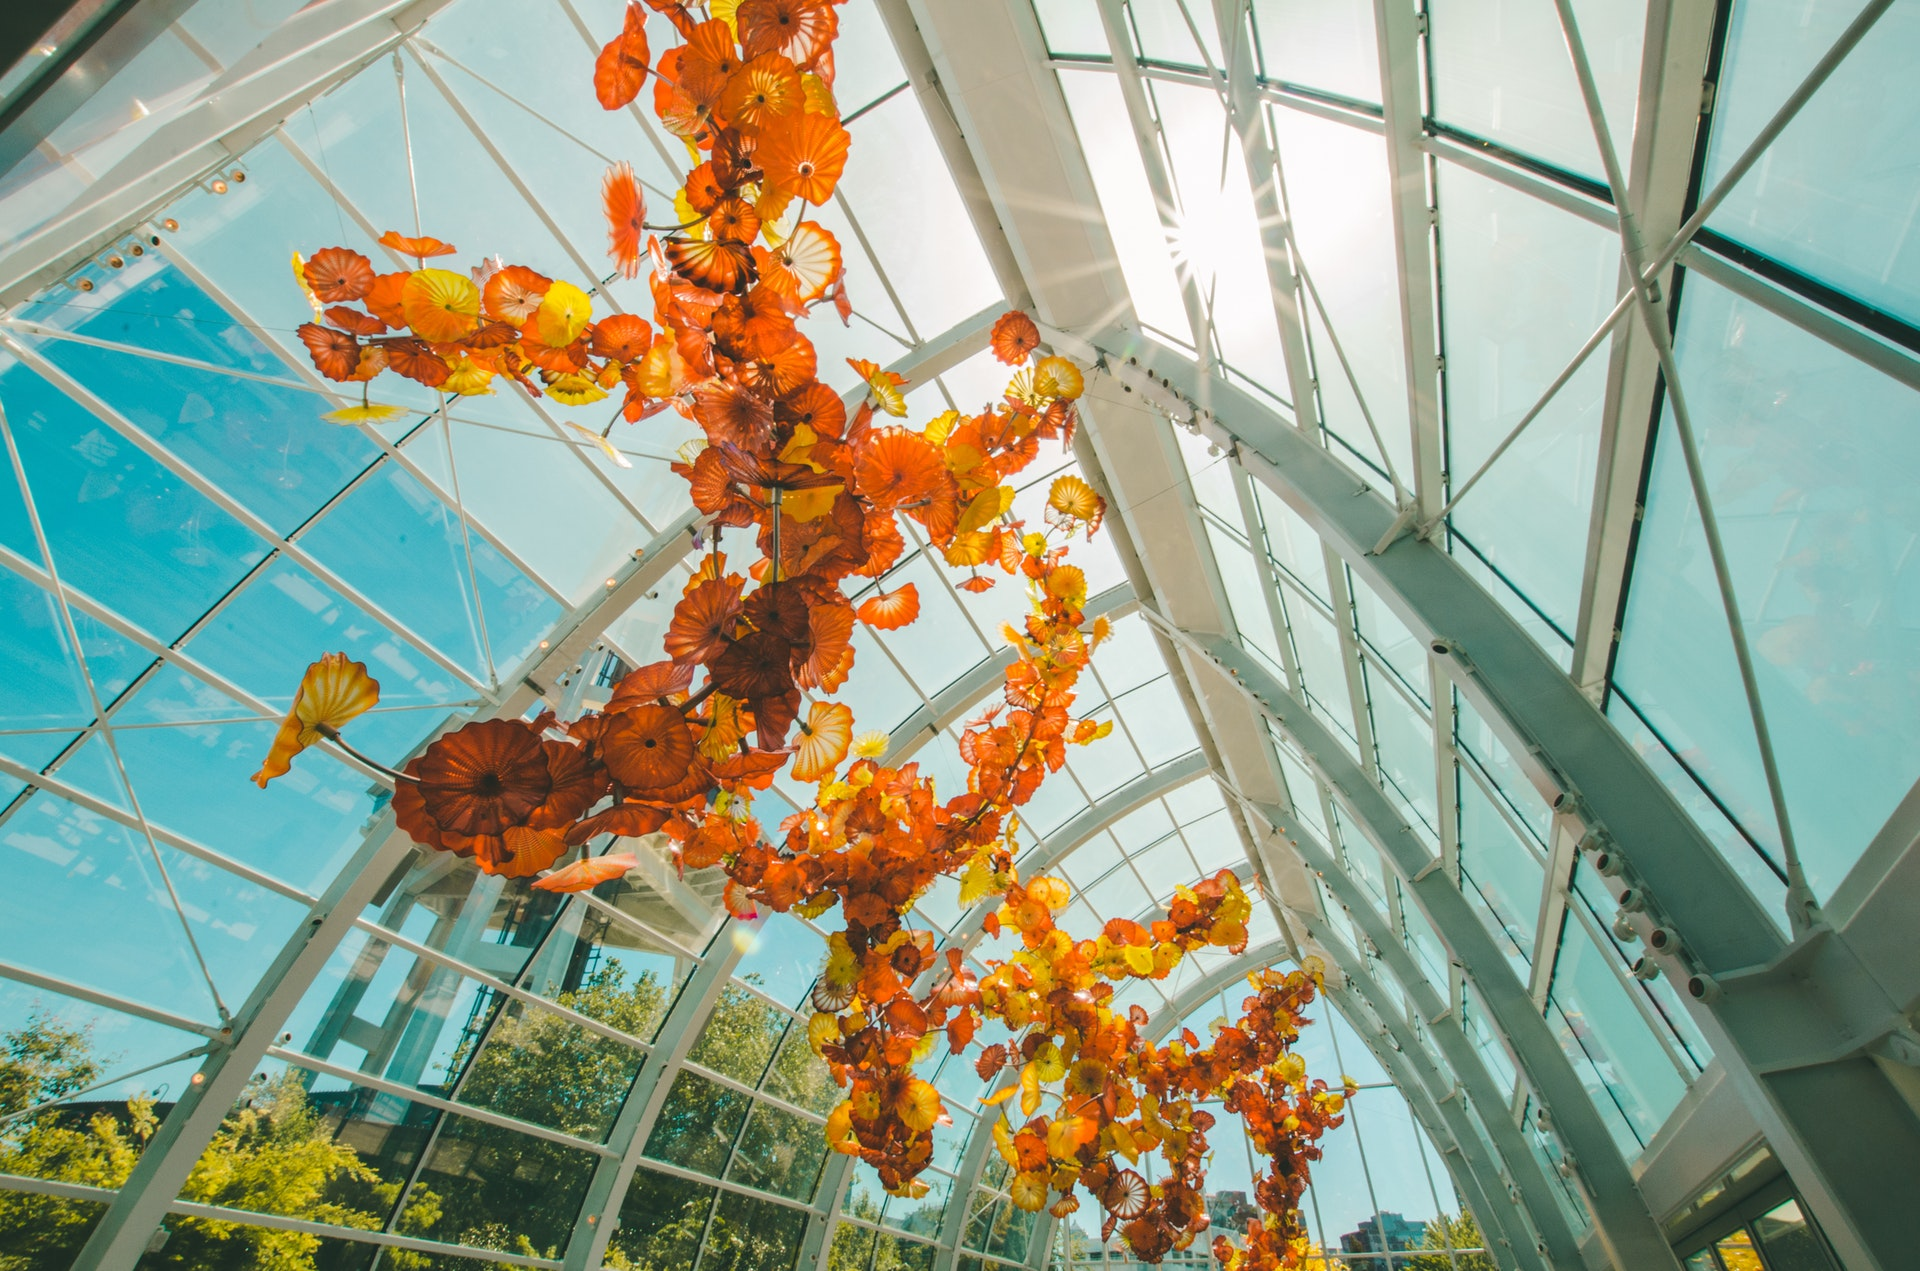 A large domed glass building where beautiful orange flowers hang under the glass, dazzling in the sunlight on a clear day